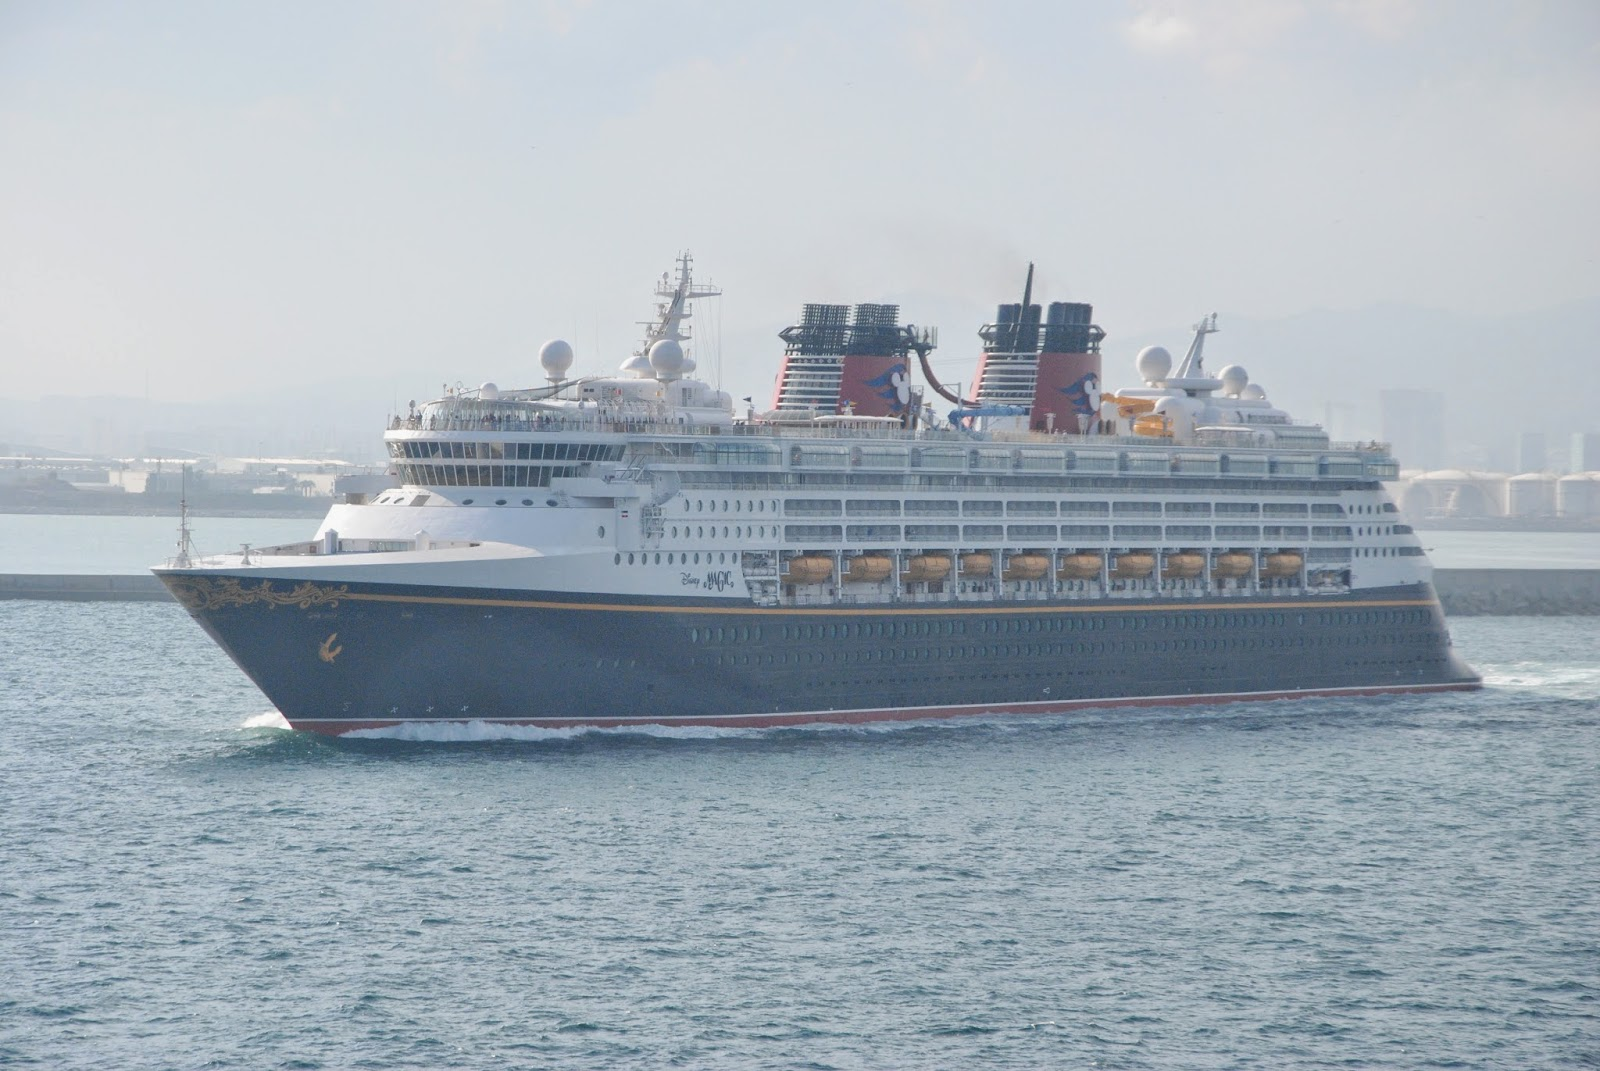 CRUISE SHIPS AND LINERS